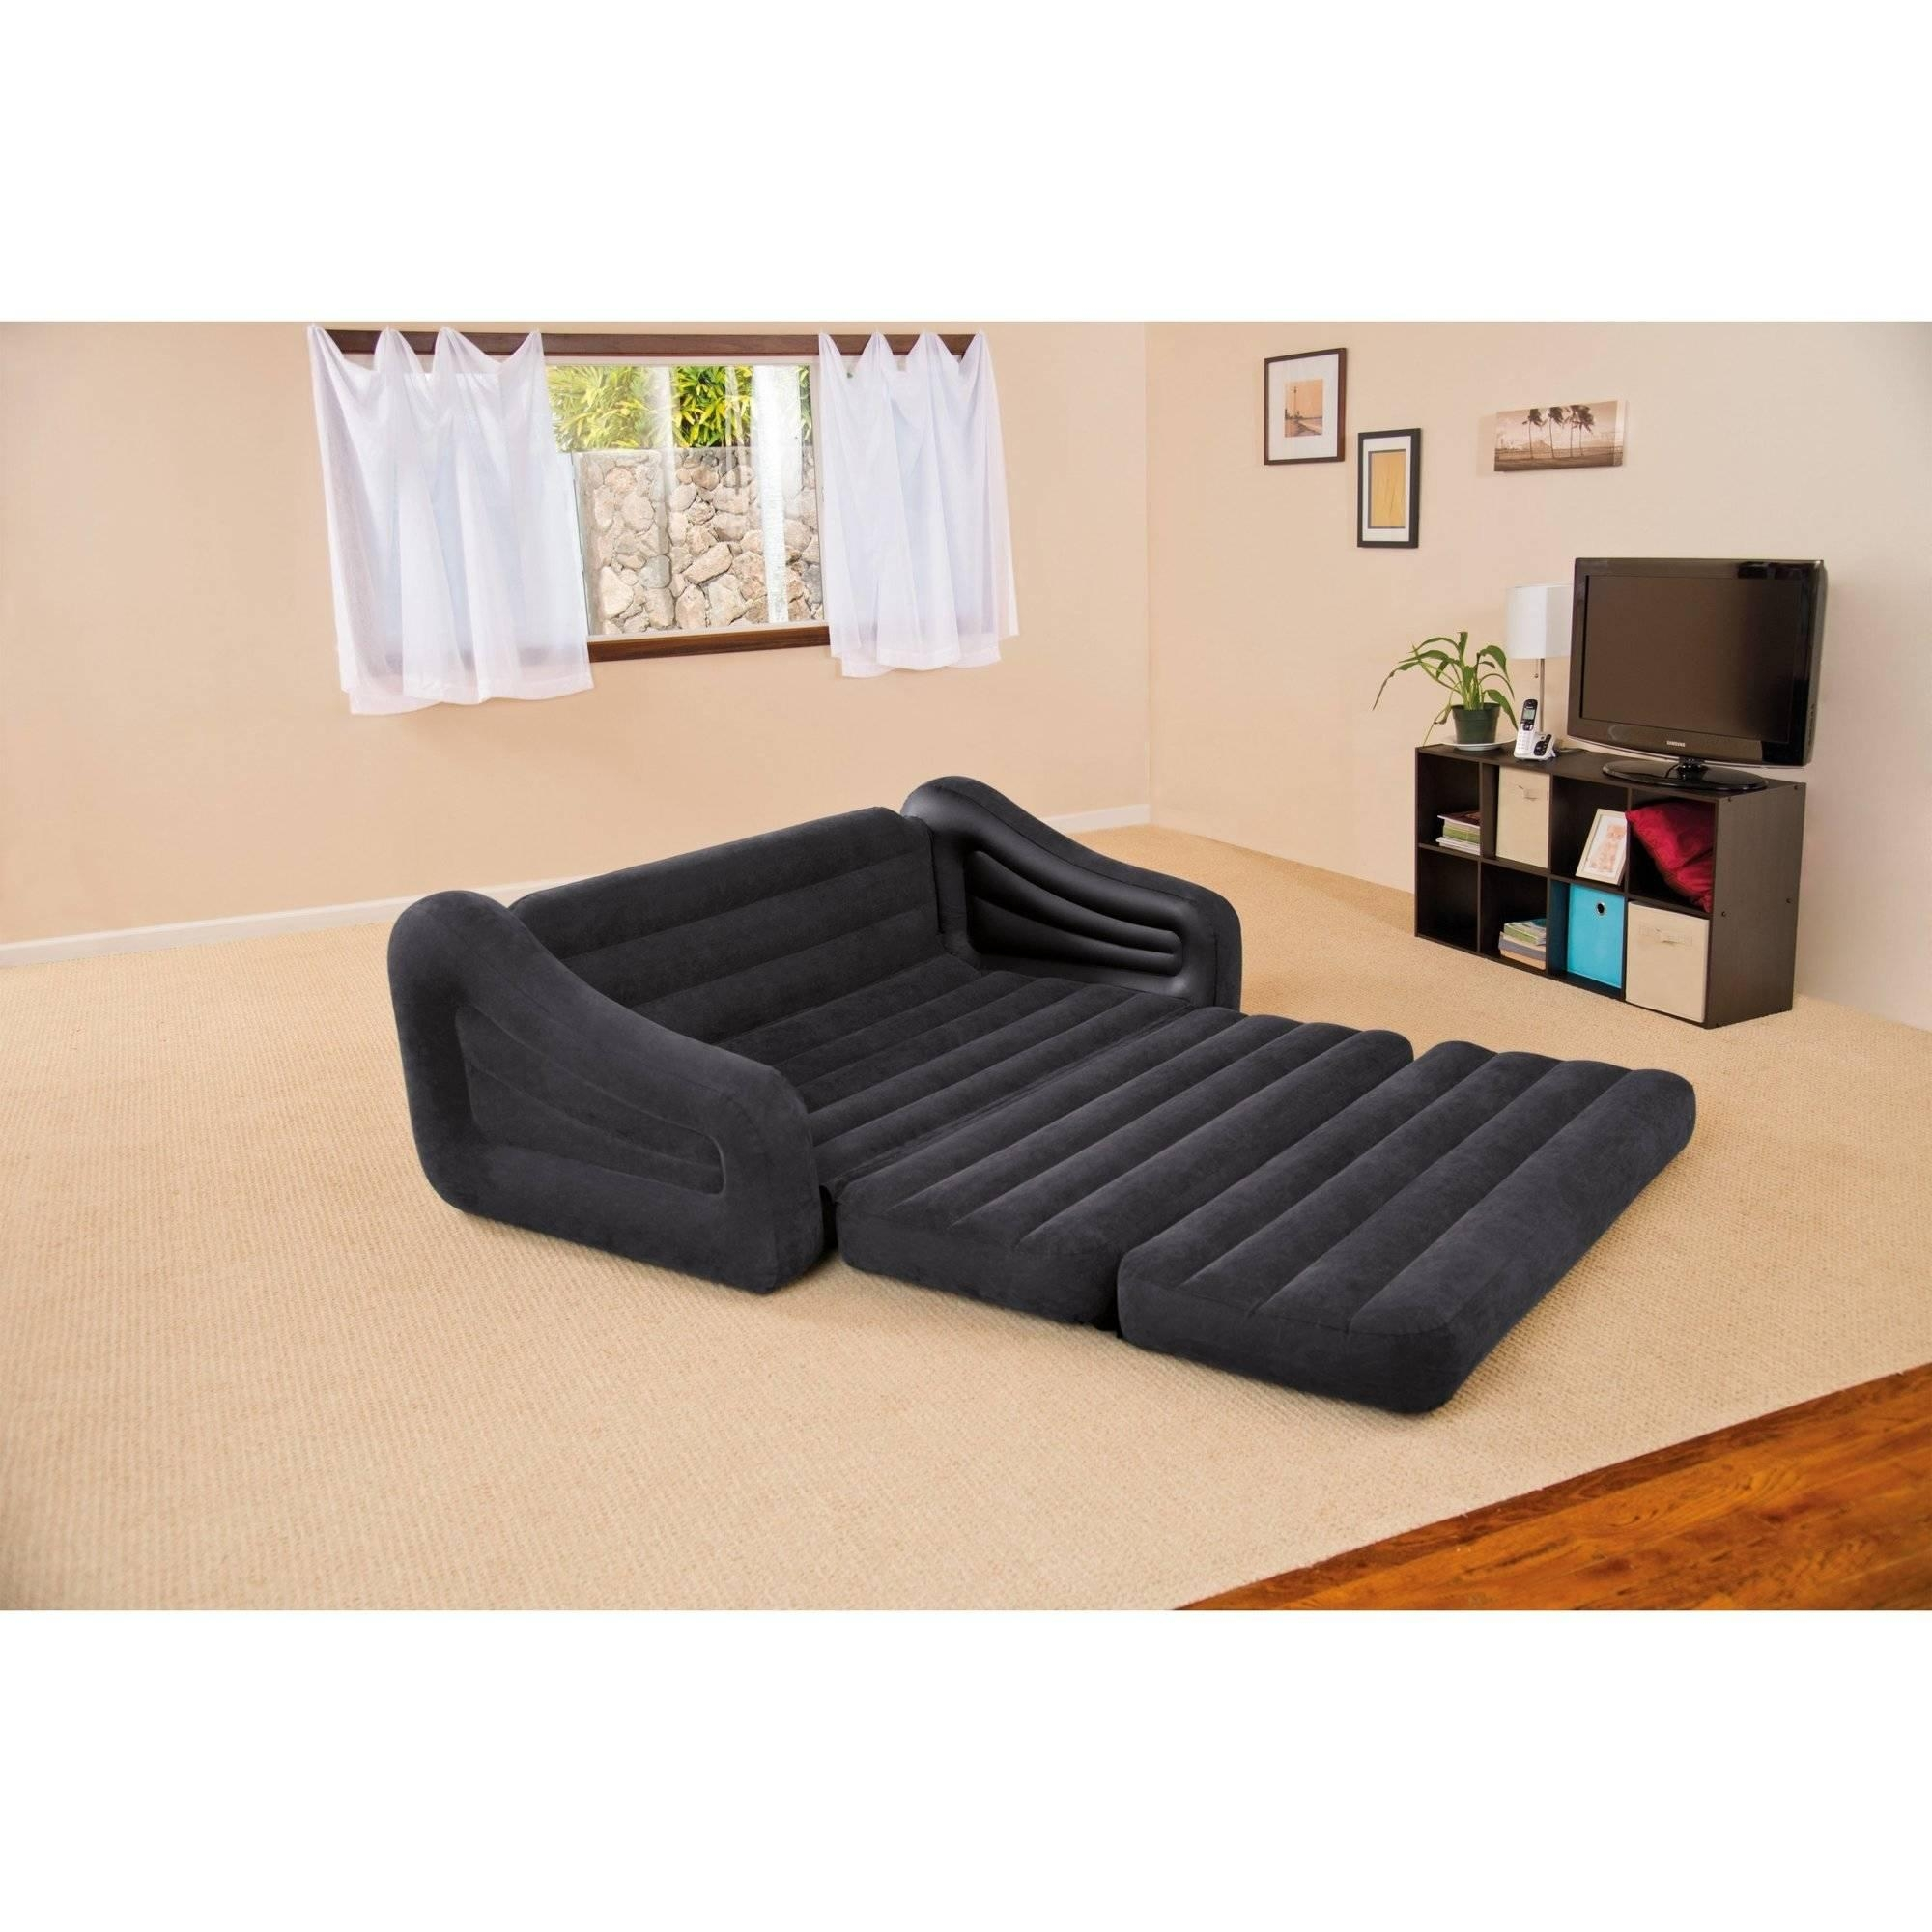 Furniture: Leather Futon Walmart | Futons At Kmart | Futon Full Size In Kmart Futon Beds (Image 10 of 20)